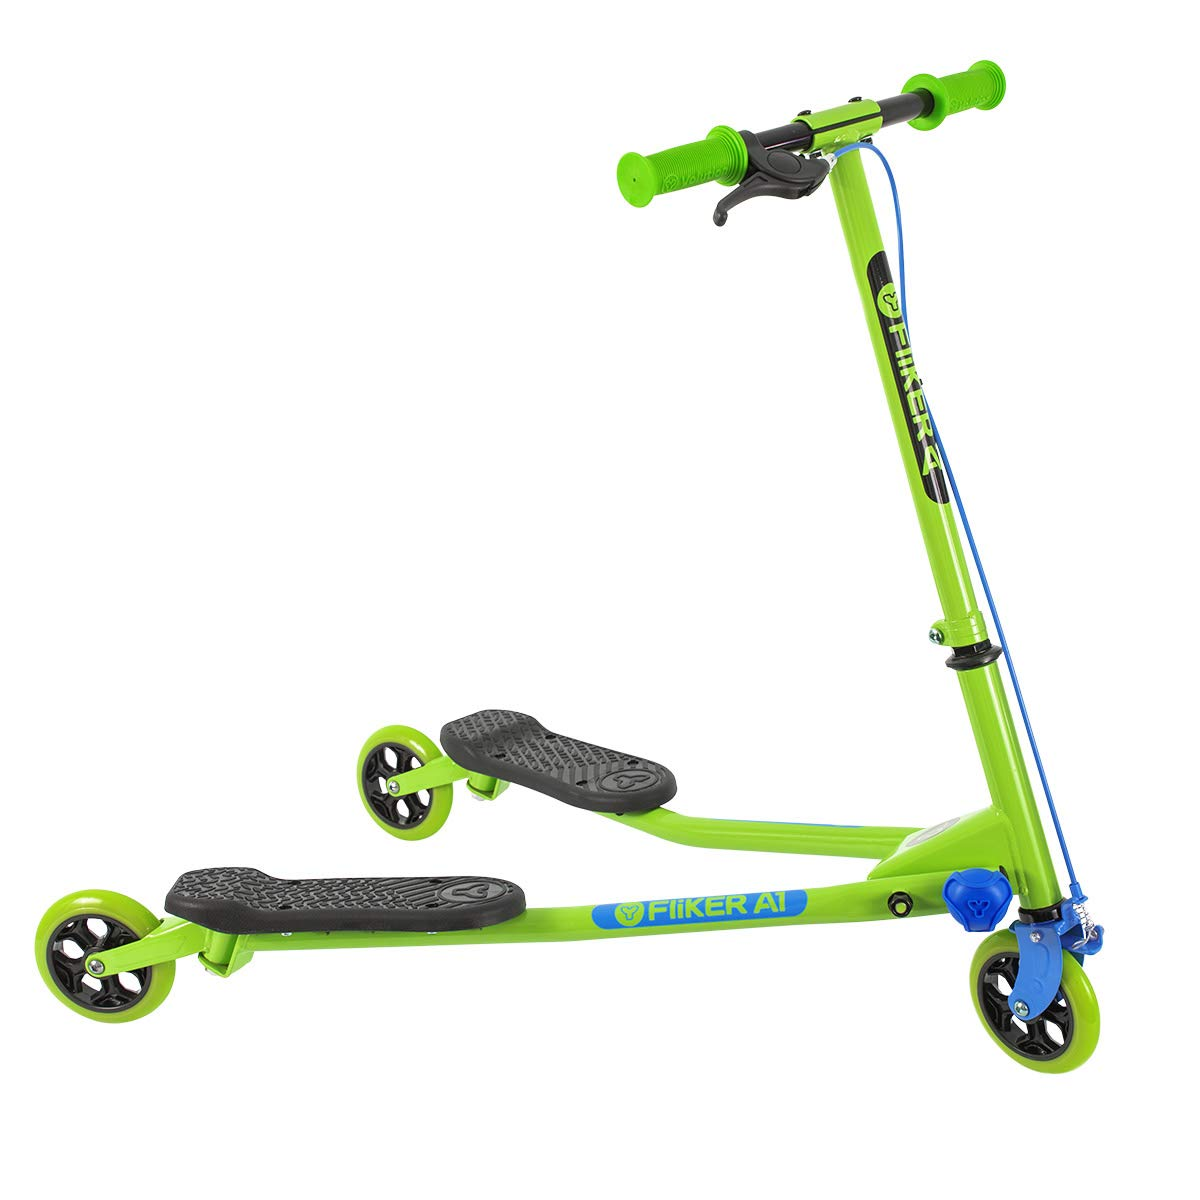 Yvolution Y Fliker Air A1 Swing Wiggle Scooter | Three Wheels Drifter for Boys and Girls Age 5 Years Old and Up (Green New) by Yvolution